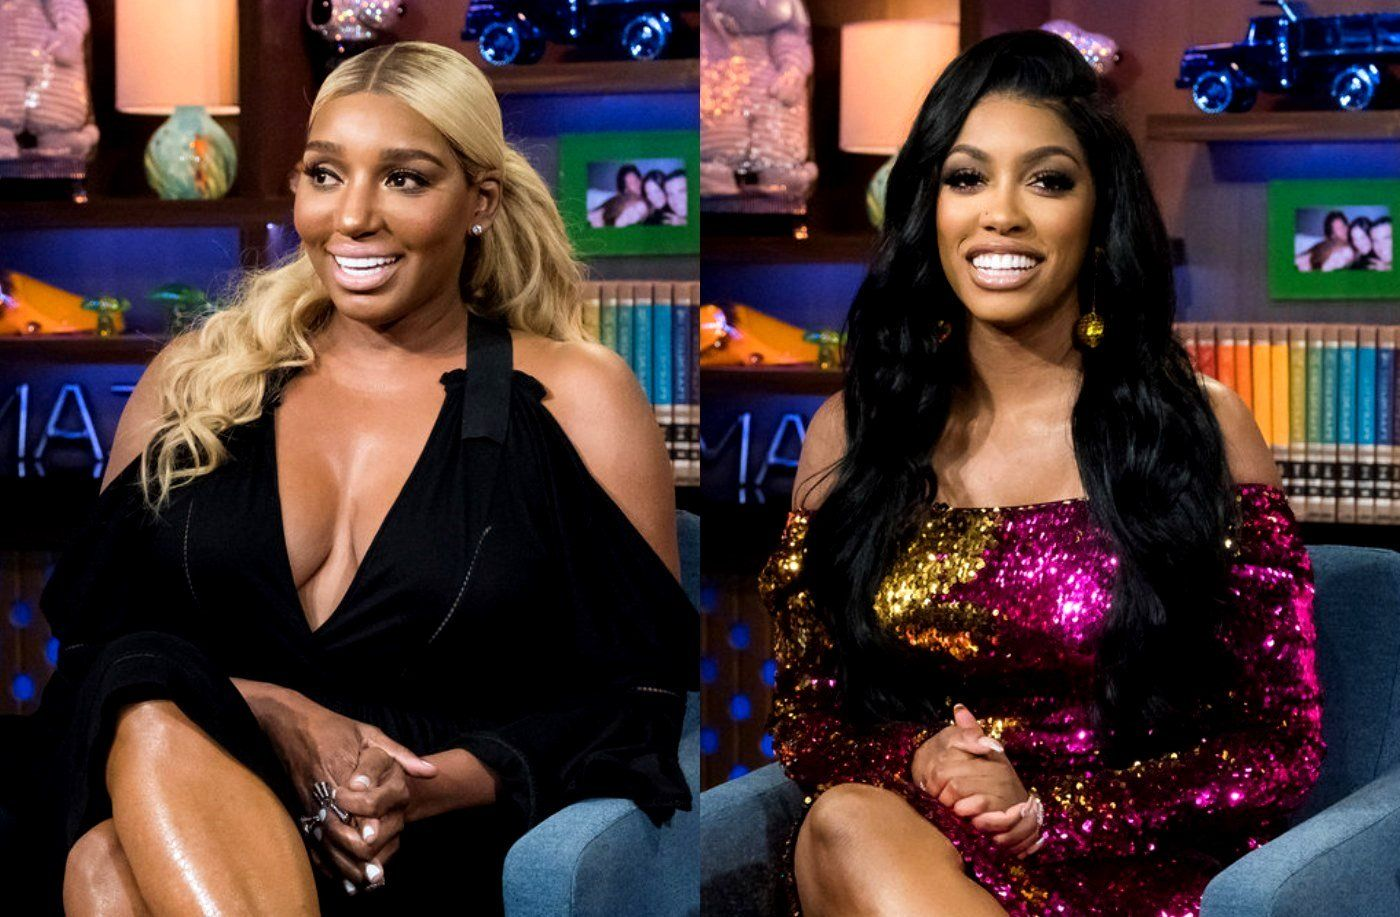 RHOA: Nene Leakes Reveals Who Reached Out To Her Amid Rumors She Was Quitting The Show #NeneLeakes, #RealHousewives, #Rhoa celebrityinsider.org #Entertainment #celebrityinsider #celebritynews #celebrities #celebrity